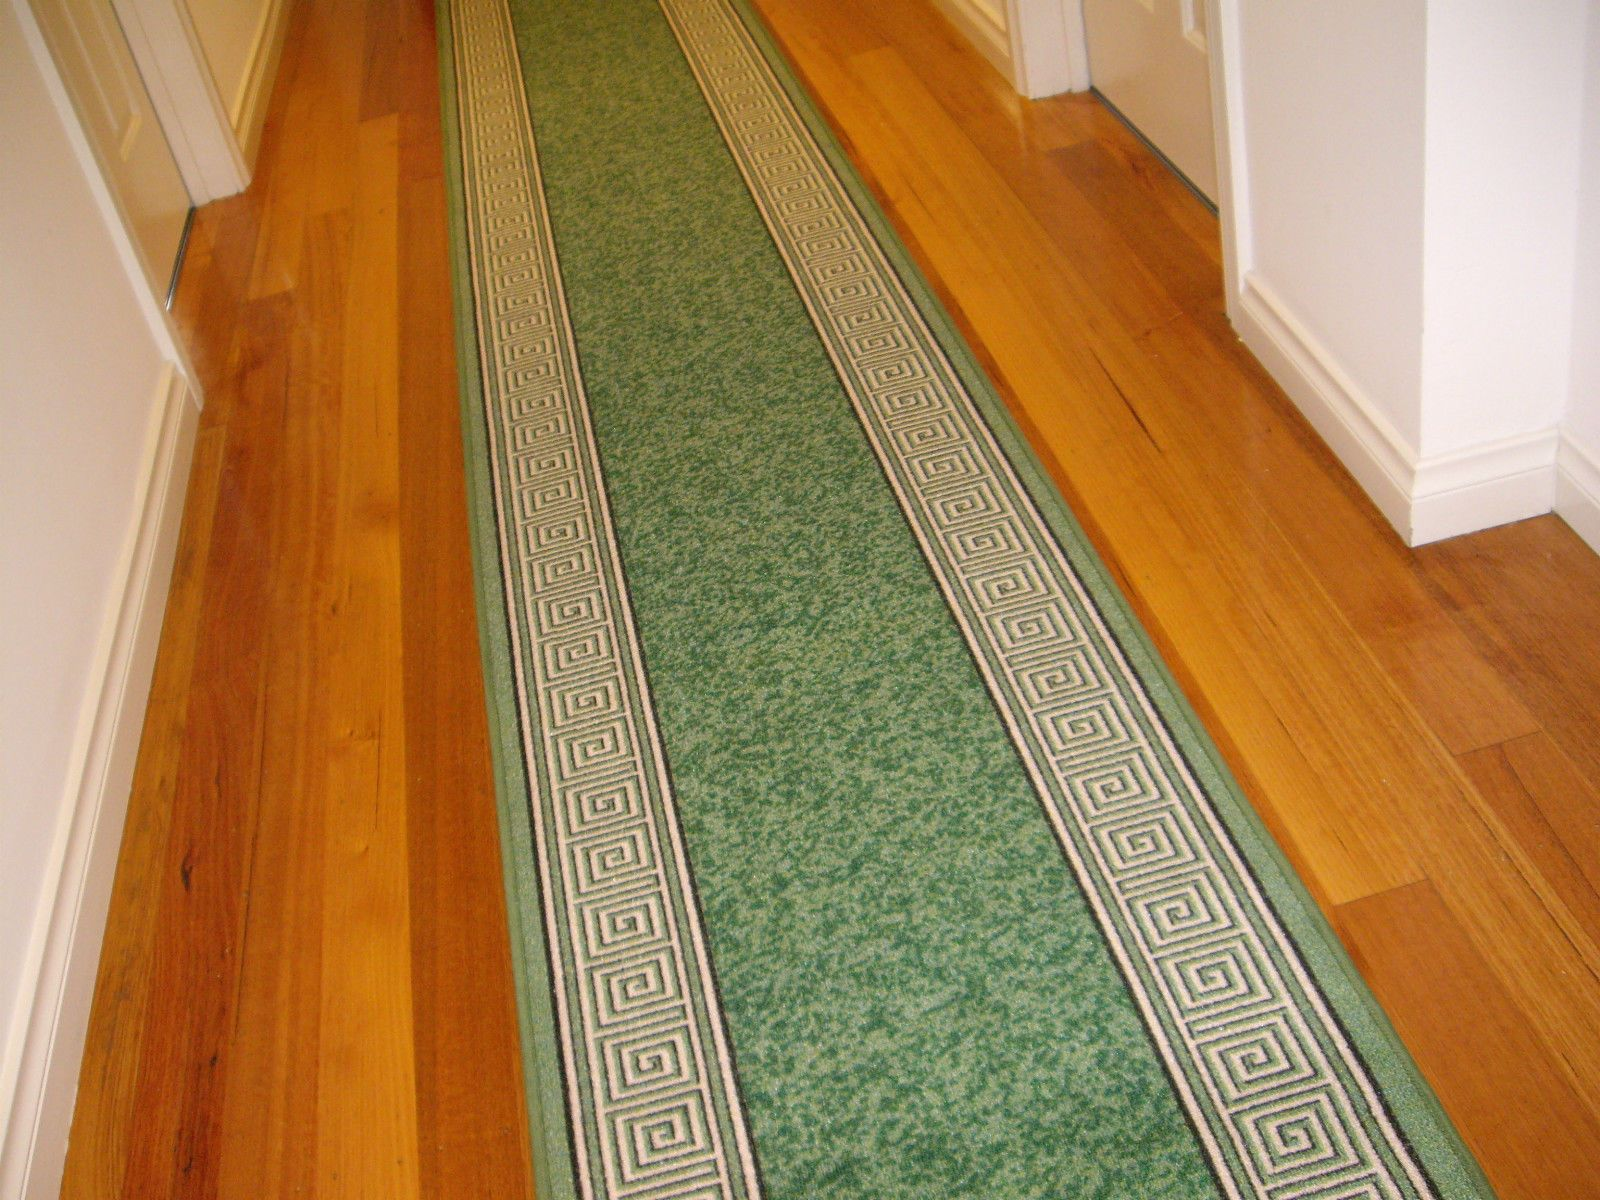 Hall Runner Floor RUG Carpet MAT Pattern Modern Design 5 Meters Long PC702 Green | eBay